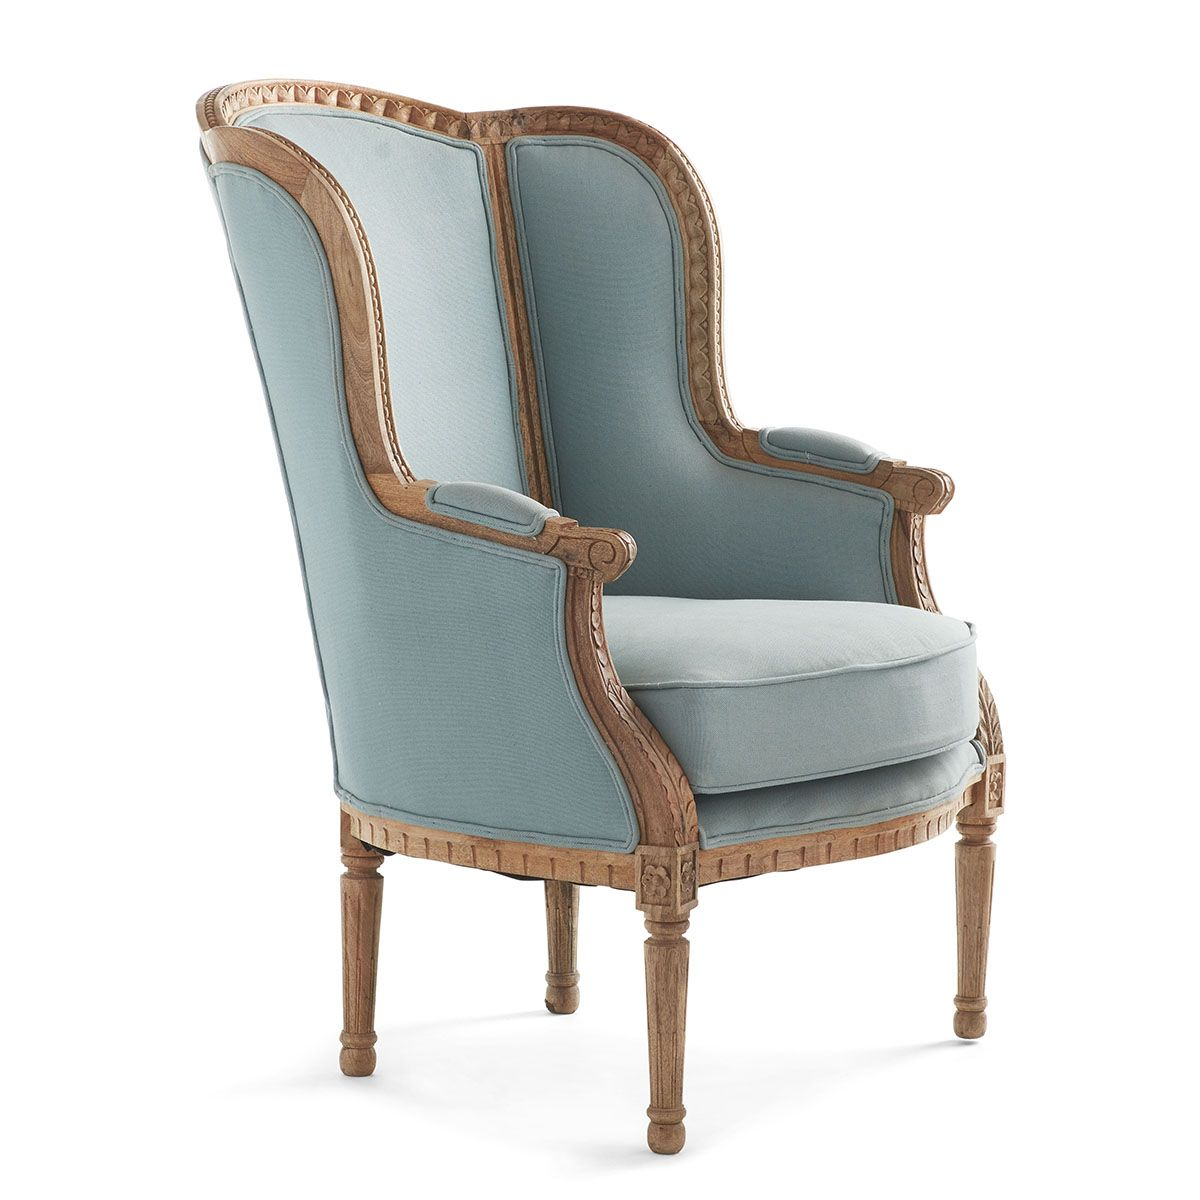 Best Louis Xv Wing Chair Aqua Slipcovers For Chairs Comfy 400 x 300